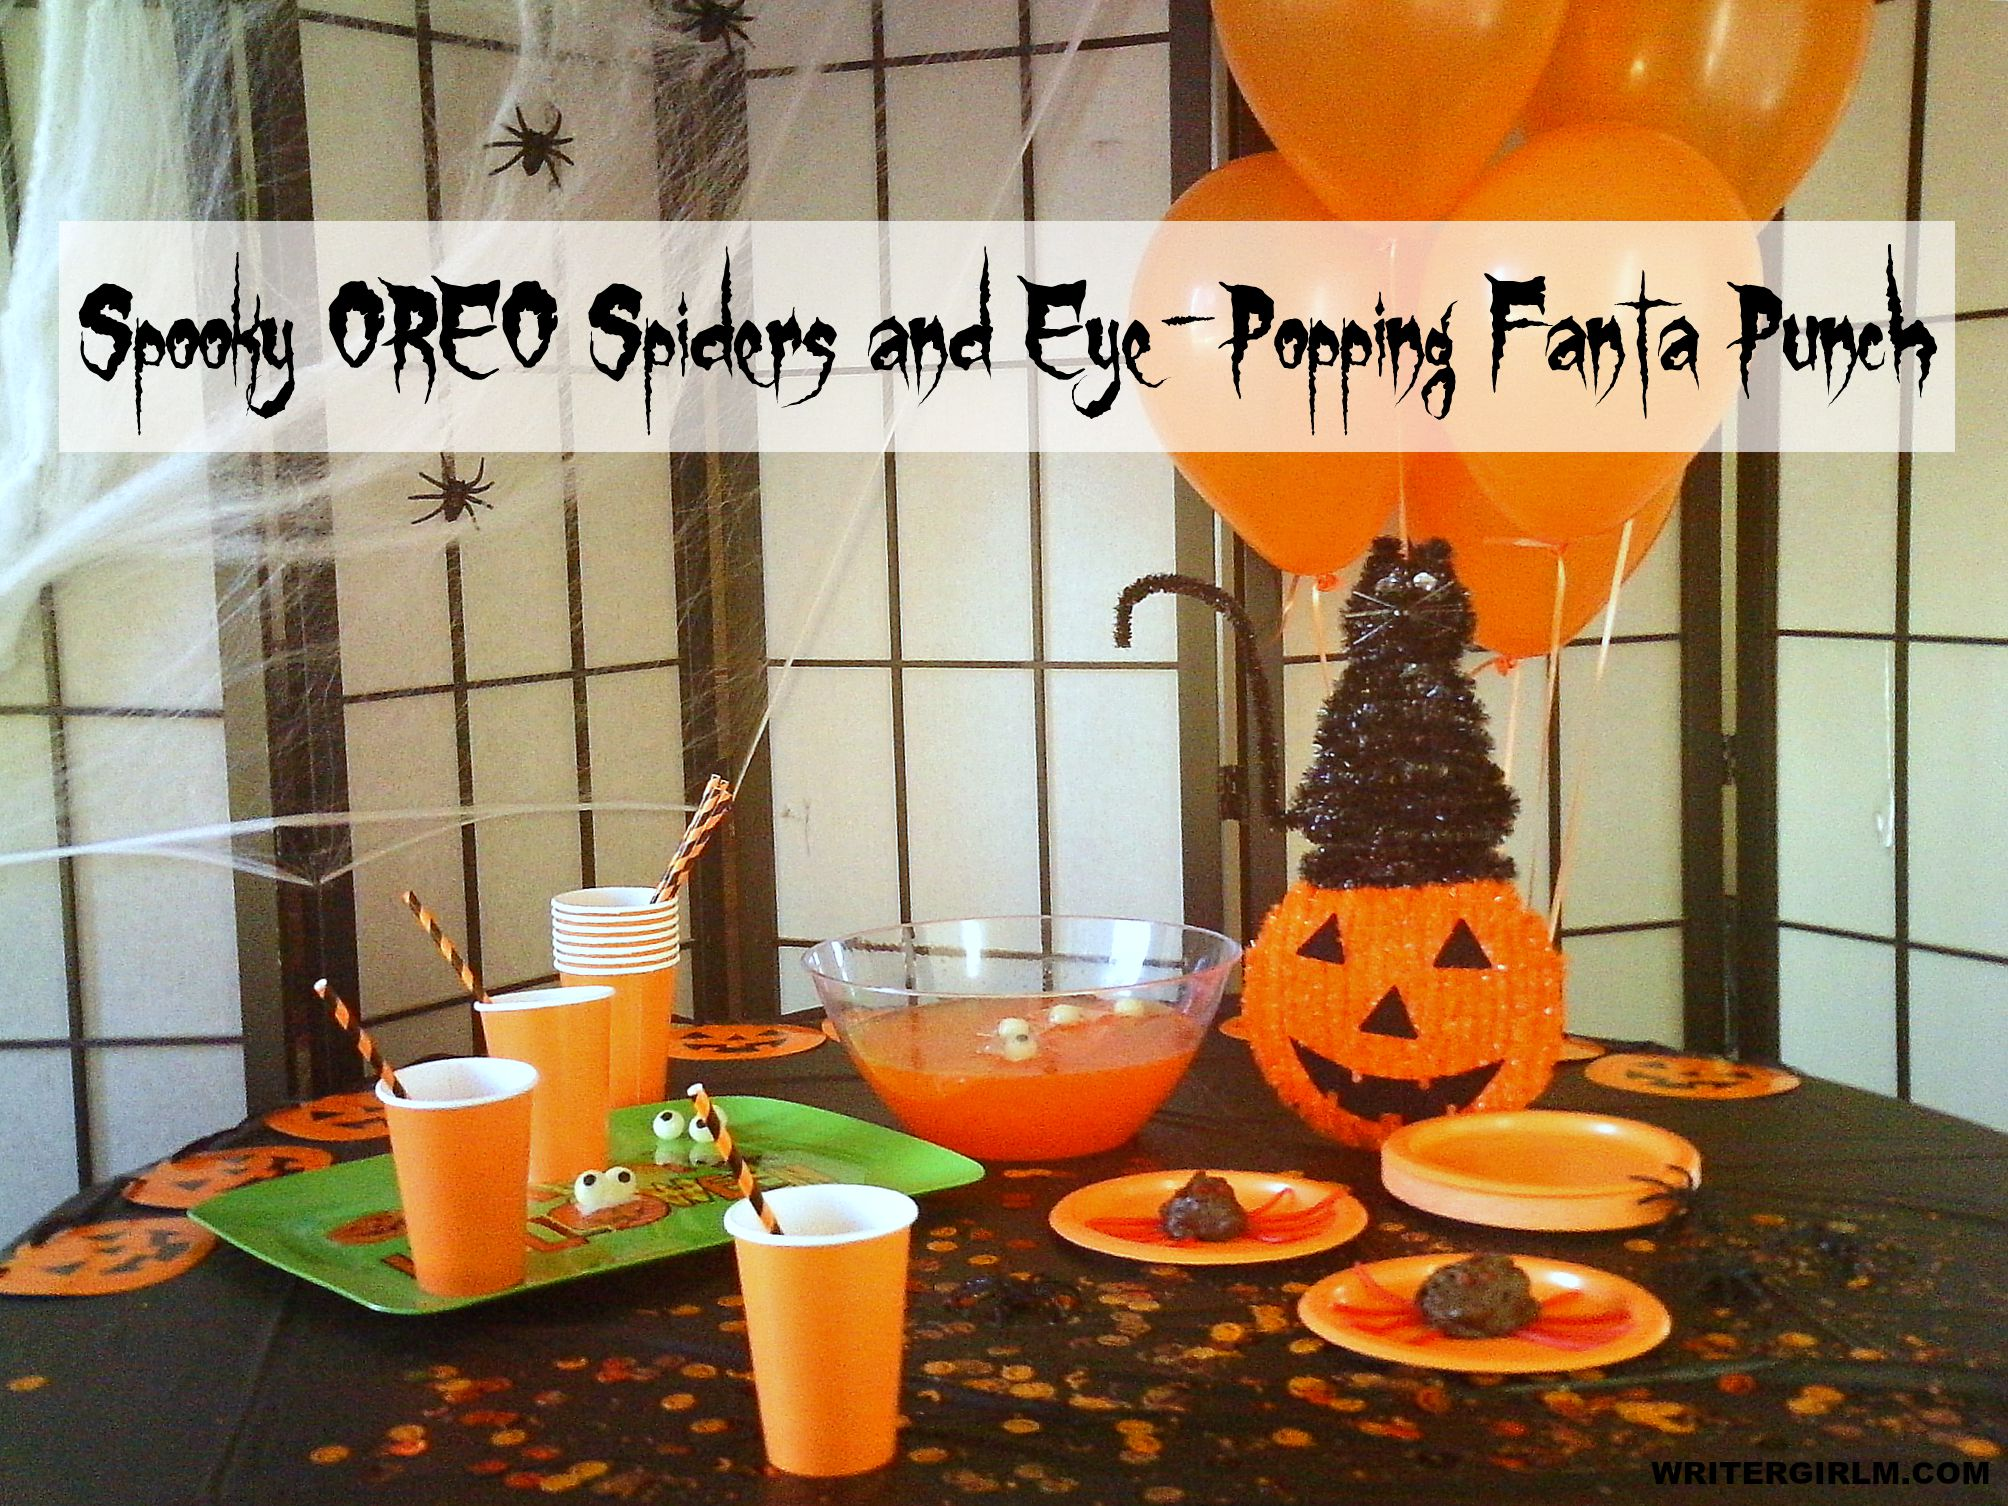 Spook up your Halloween bash with these Spooky OREO Spiders and Eye-Popping Fanta Punch! #SpookySnacks #CollectiveBias